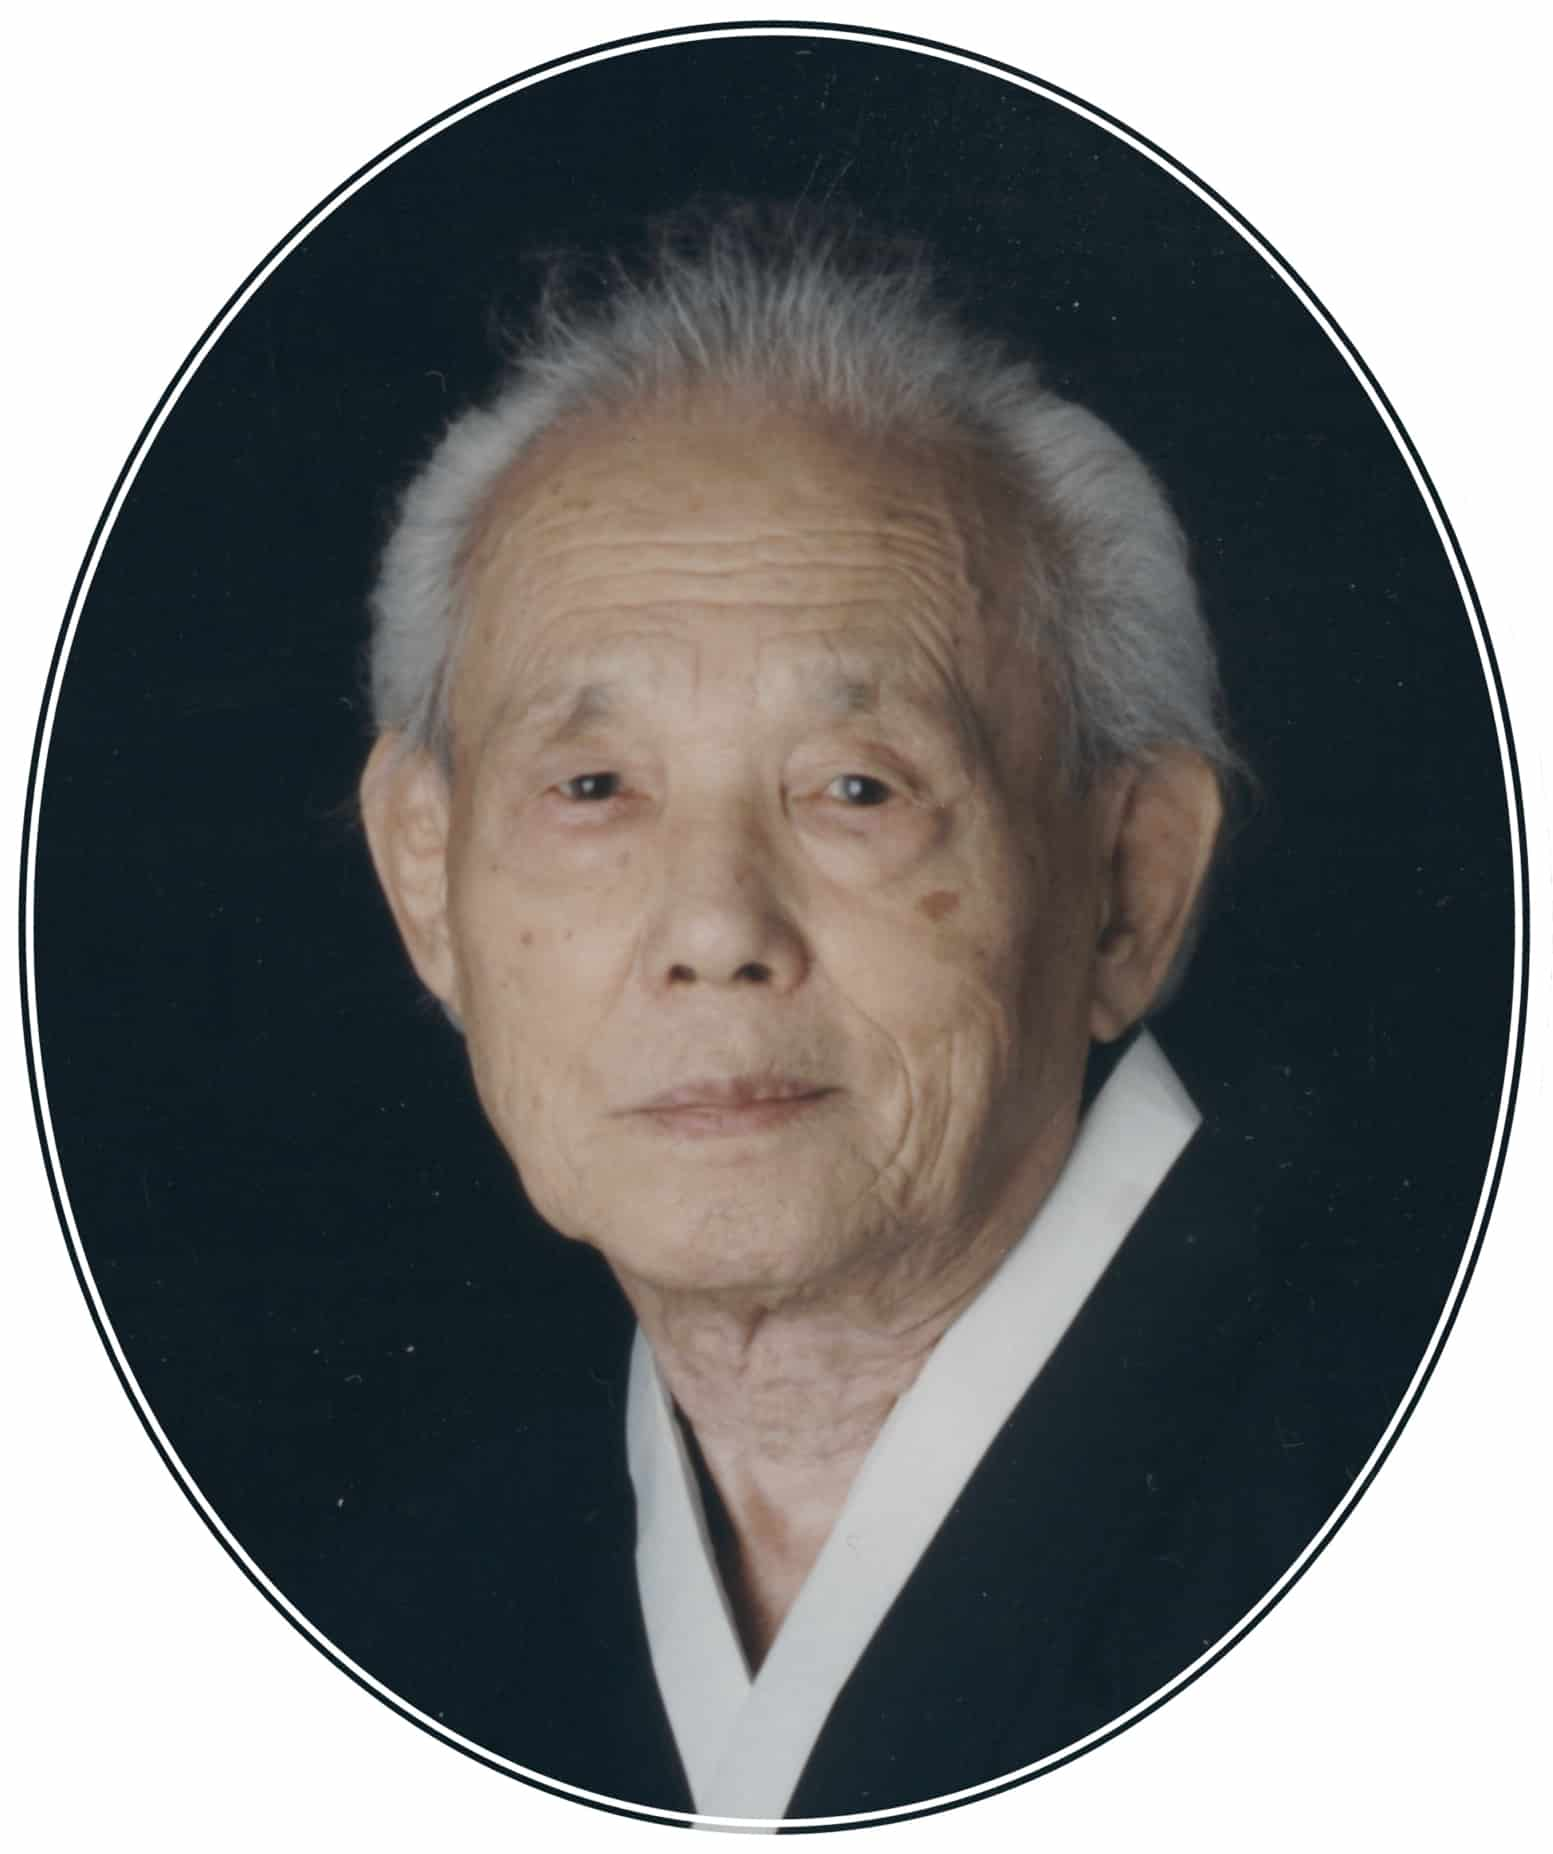 Remembering the Founder of the Moo Duk Kwan